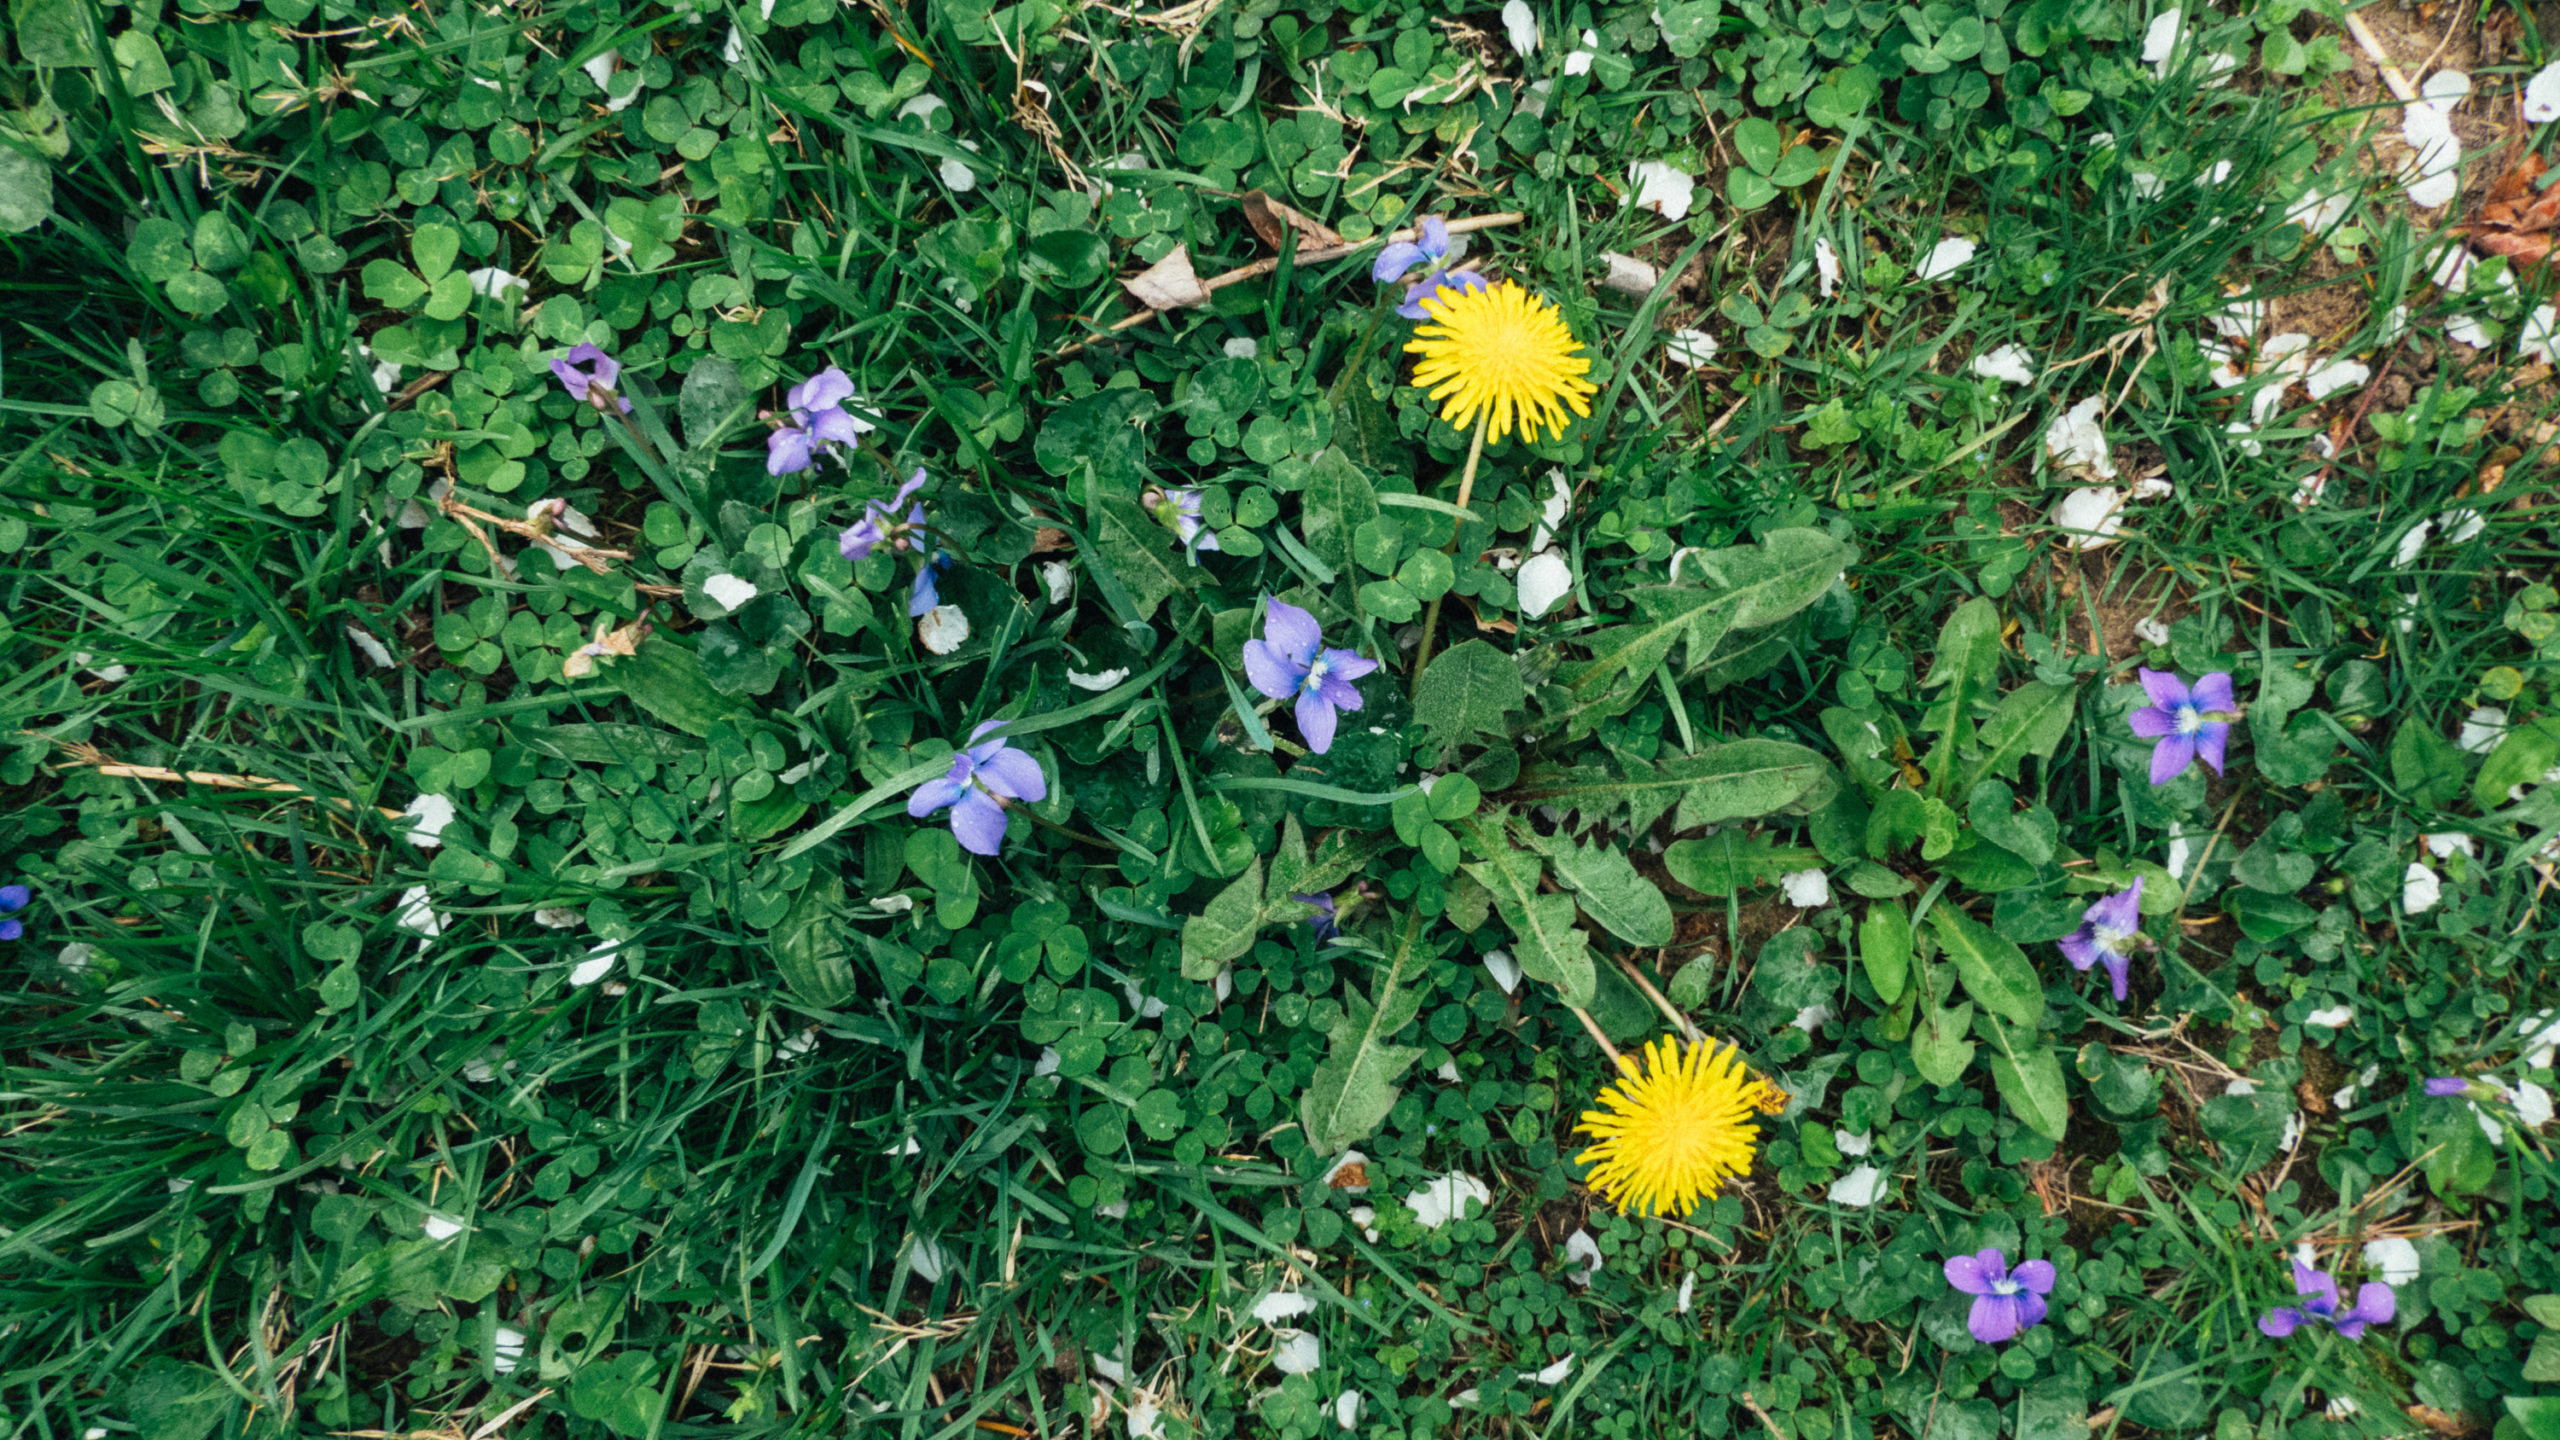 Dandelions and Violets